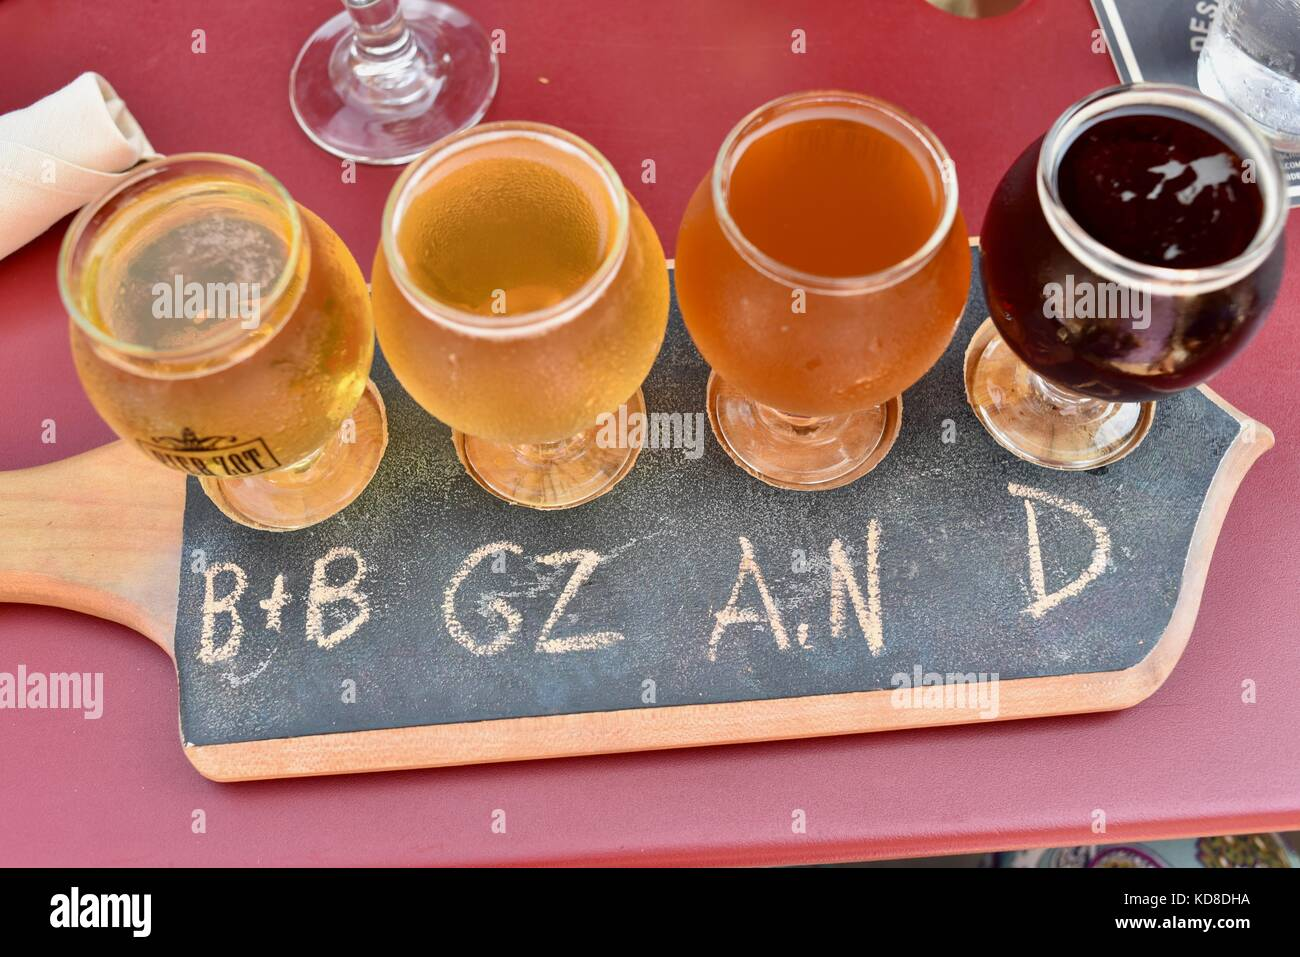 Beer sampling flight with different styles and types of beers offered at Bier Zot in Door County community of Sister - Stock Image